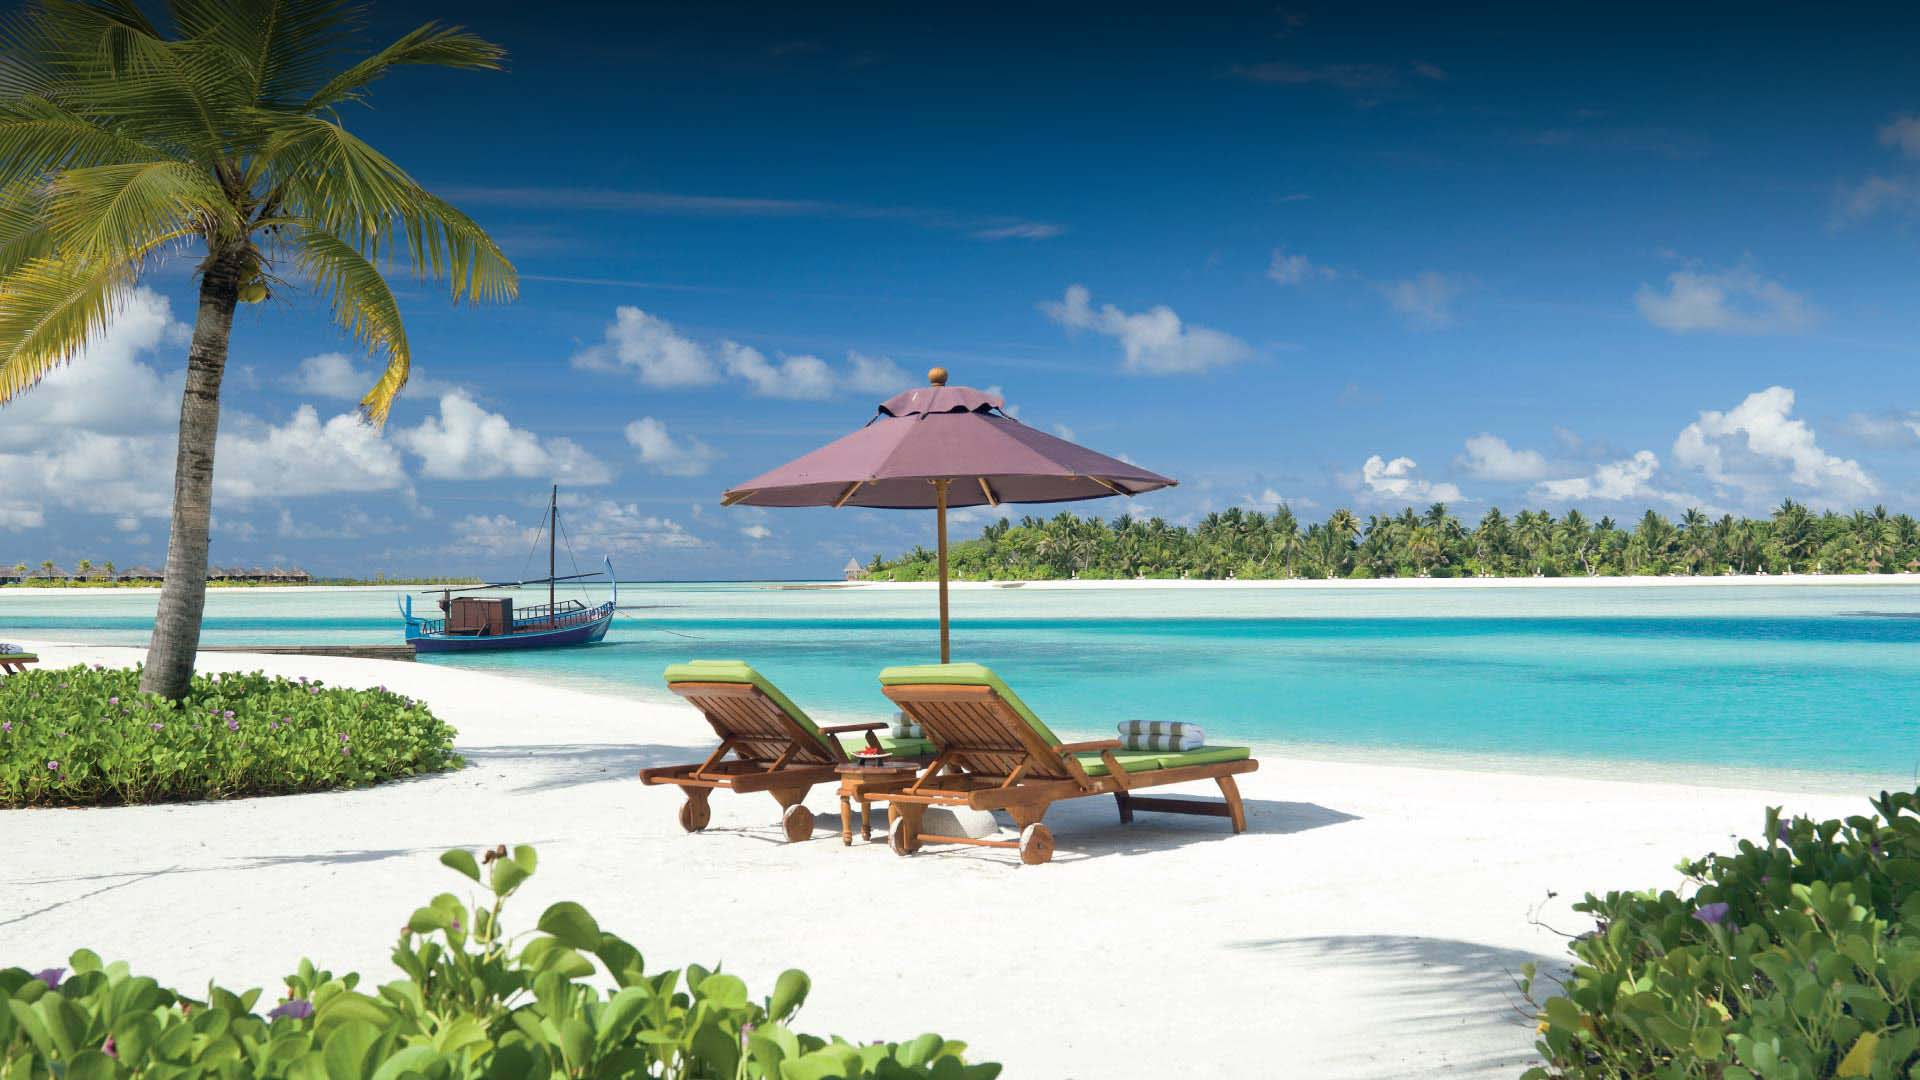 https://assets.anantara.com/image/upload/q_auto/media/minor/anantara/images/naladhu-private-island-maldives/the-resort/desktop-banner/naladhu_private_island_beach_and_lagoon_header_1920x1080.jpg